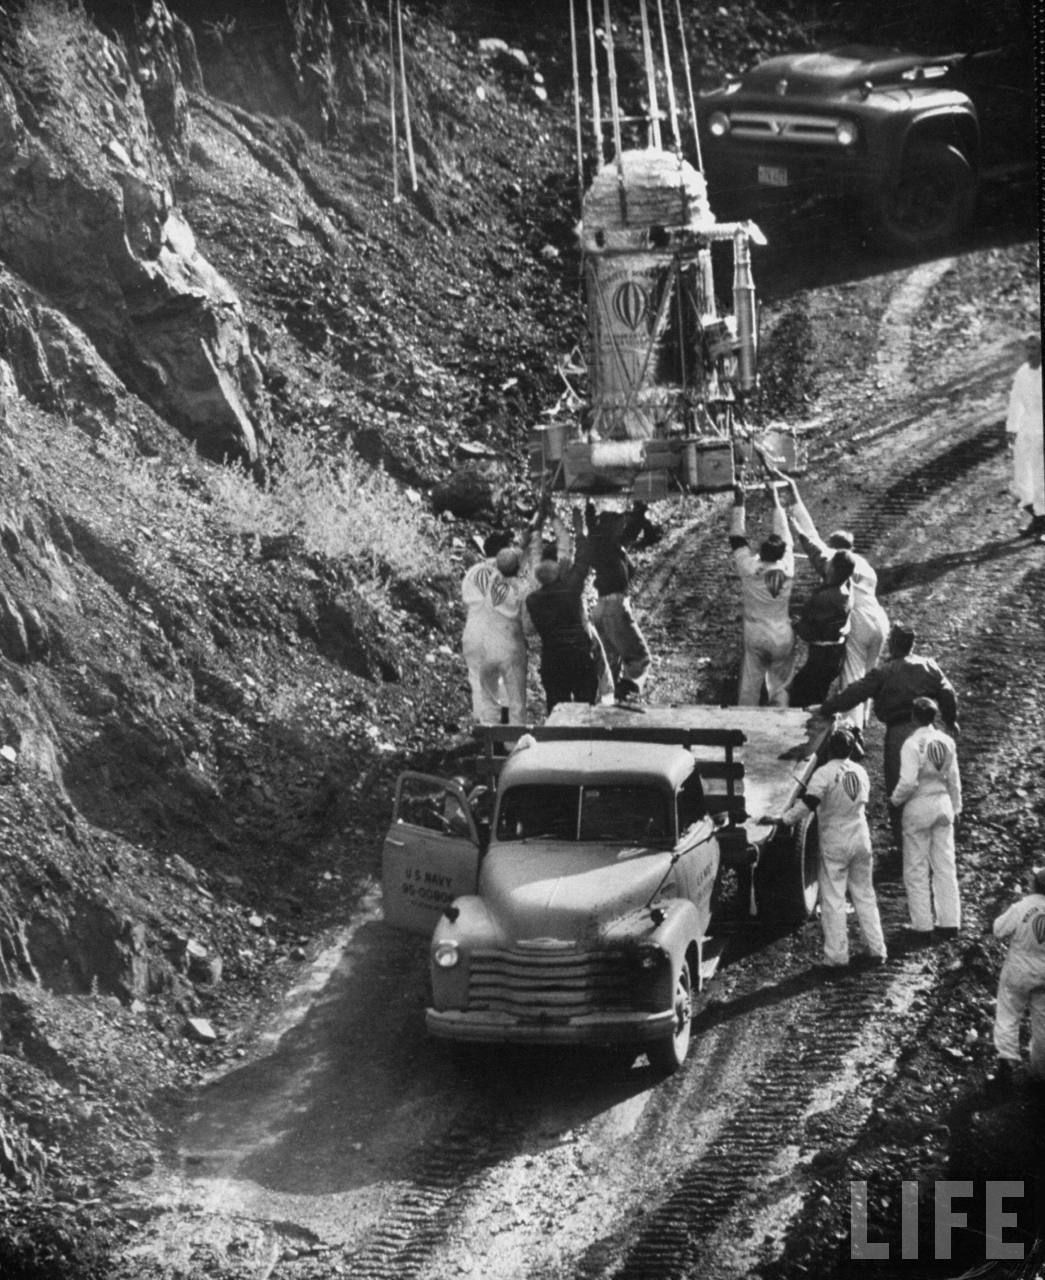 Winzen's technician moving the gondola in the back of a flat truck just before the launch to avoid the capsule hitting the rim of the mine crater (Image courtesy of LIFE archive on Google)